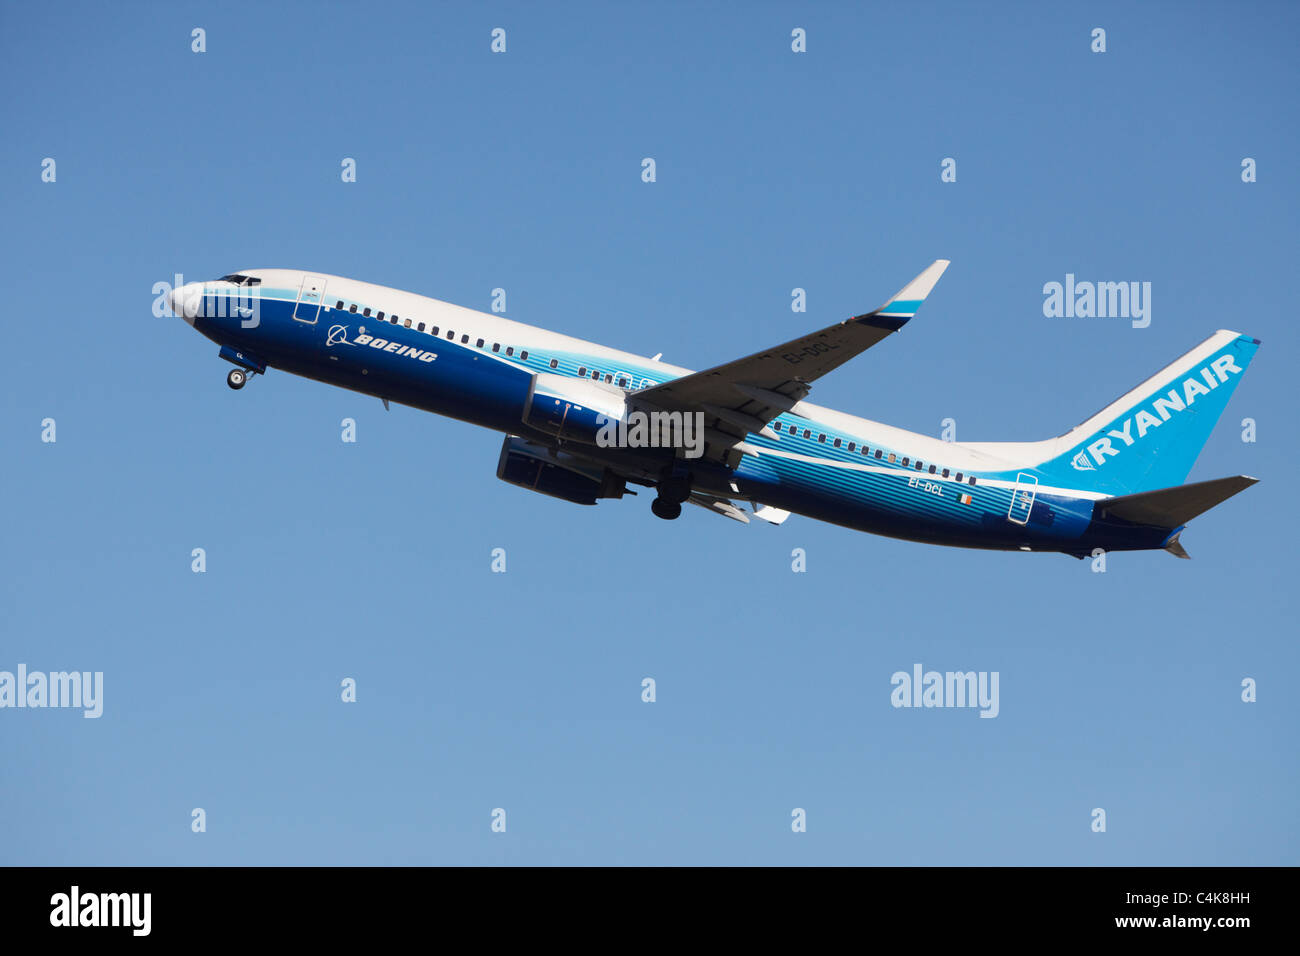 Ryanair Boeing 737-800 in Boeing Dreamliner colors climbing after taking off from runway - Stock Image